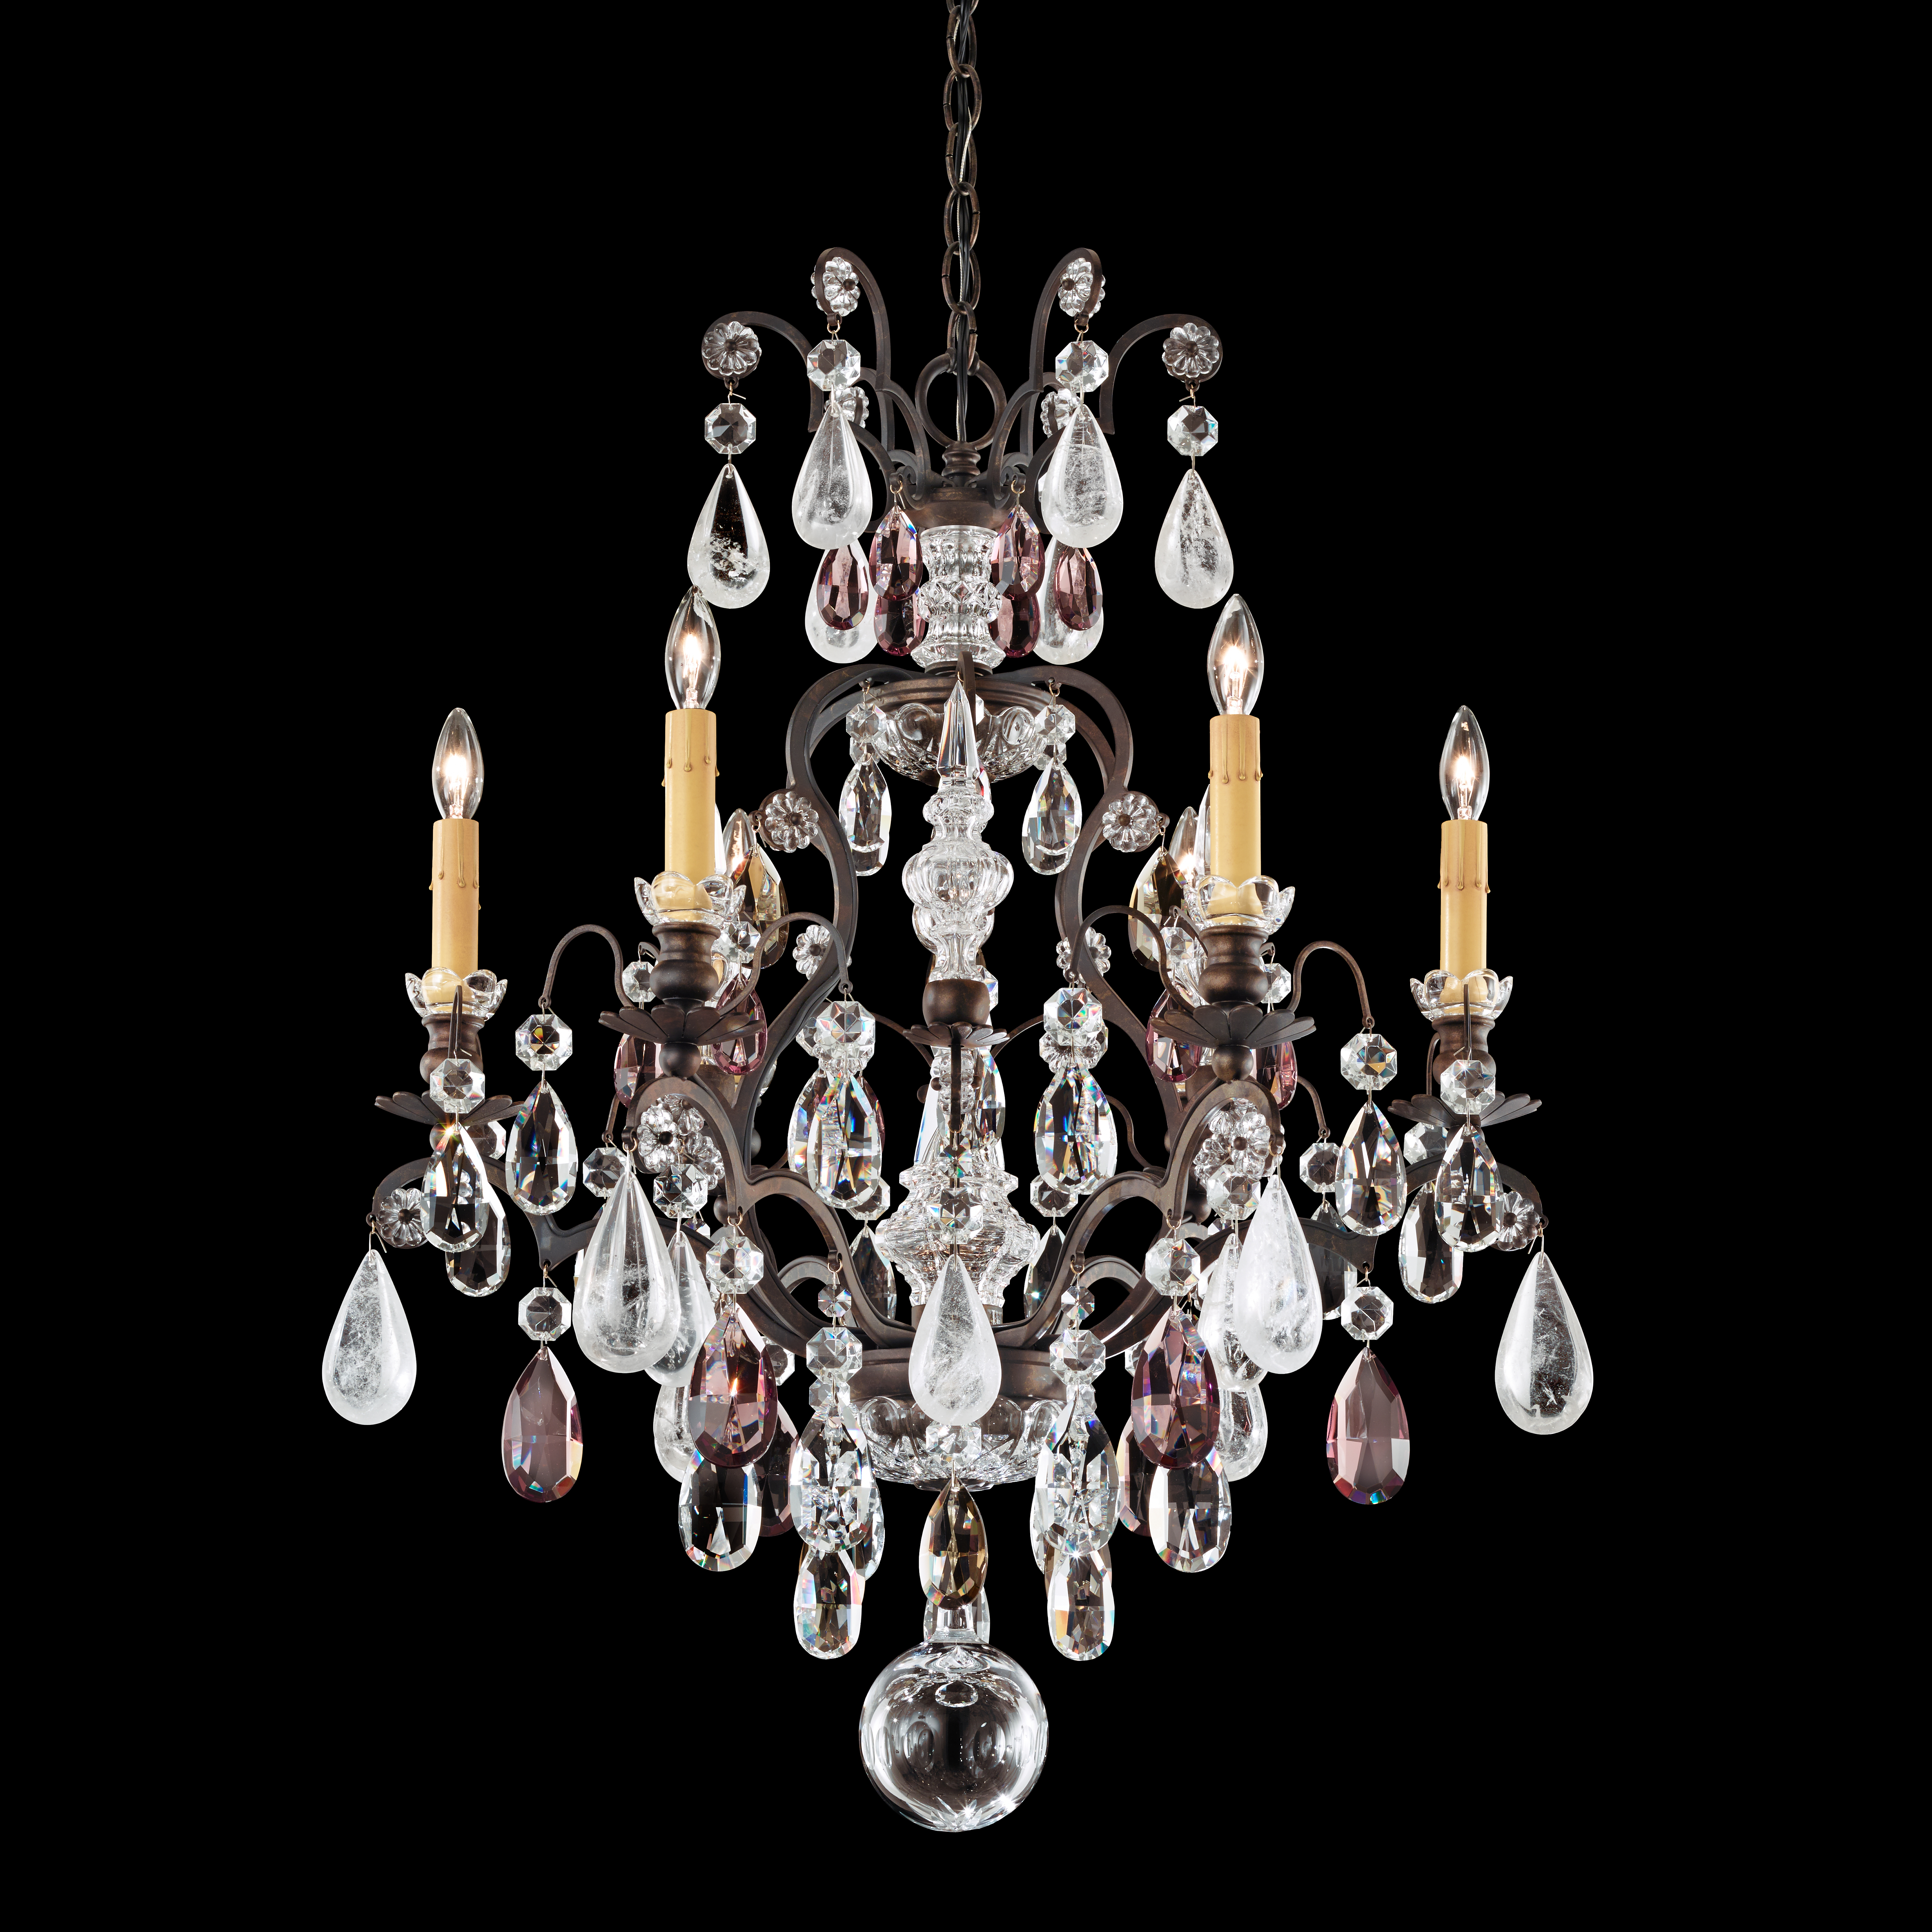 chandeliers century crystal organic oval contemporary mid chandelier modern hall rock starburst dering transitional